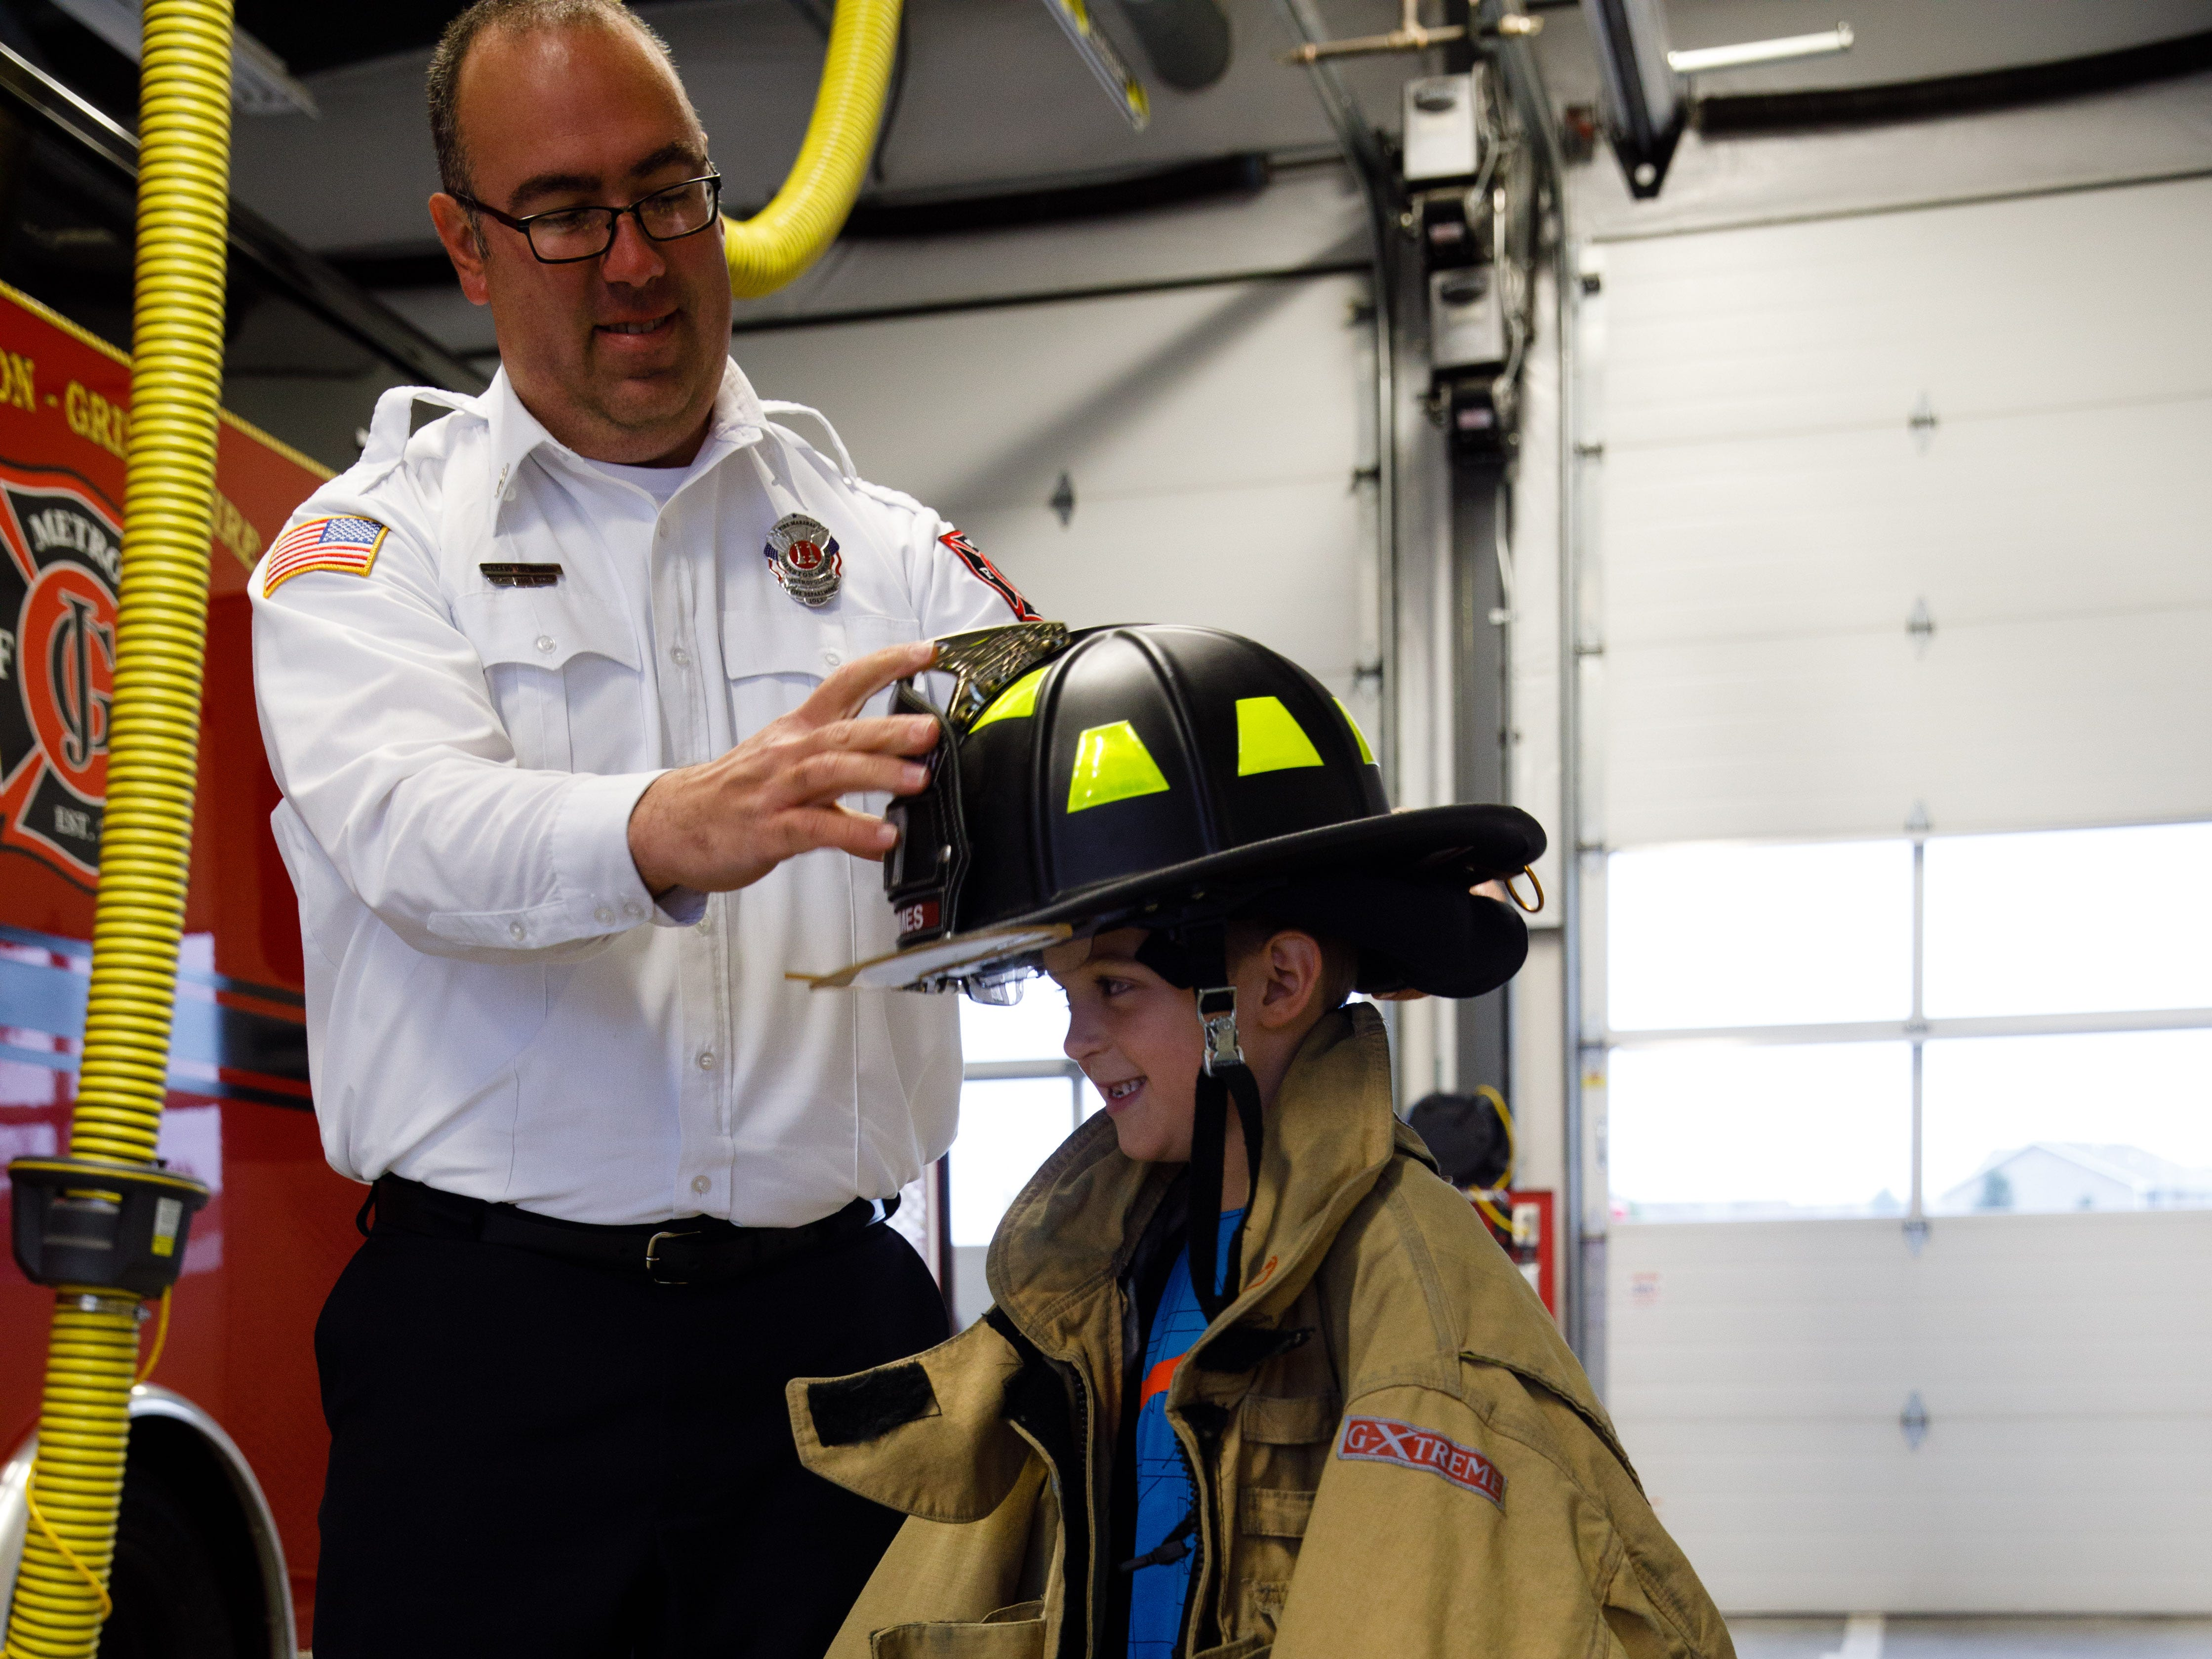 Fire Marshall Craig Van Huel helps Wyatt Puffer, 6, of Des Moines, put on firefighter protective gear Wednesday, Oct. 10, 2018, during the Johnston-Grimes Metropolitan Fire Department's annual Fire Prevention Week Open House at the 62nd Avenue Fire Station in Johnston.